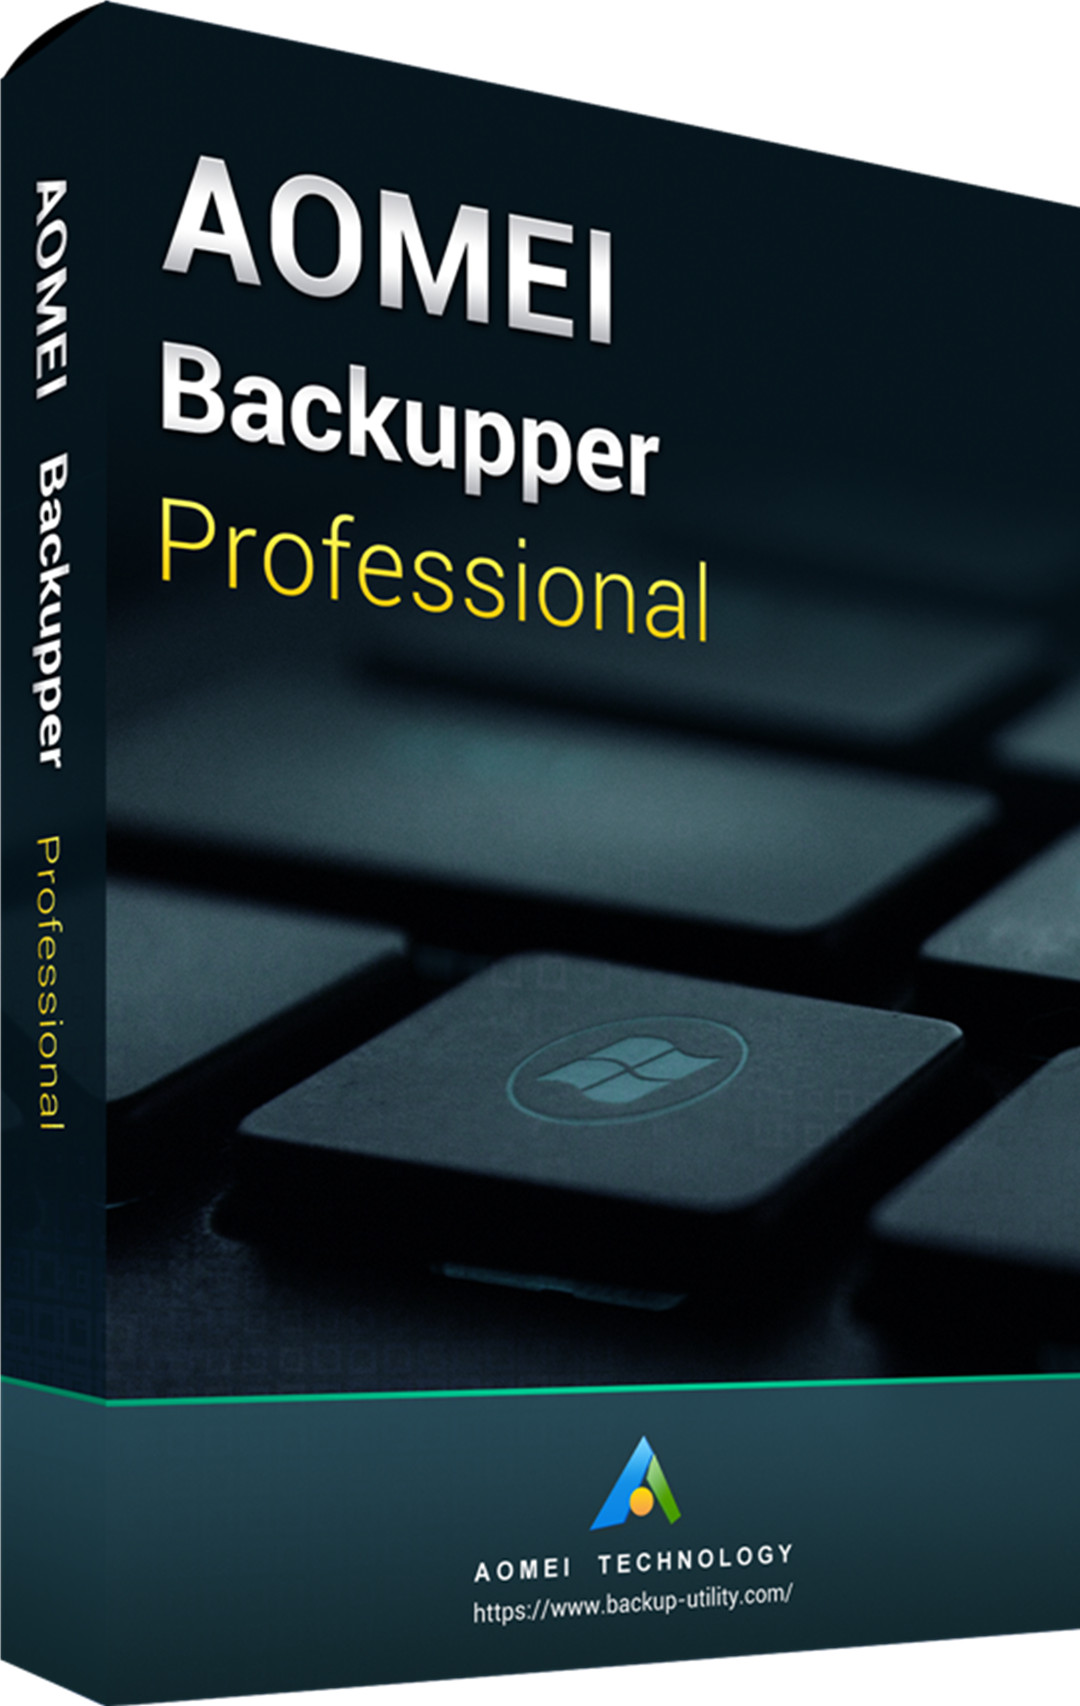 Comprar AOMEI Backupper Professional Edition 365 Days 5.7 Key Global